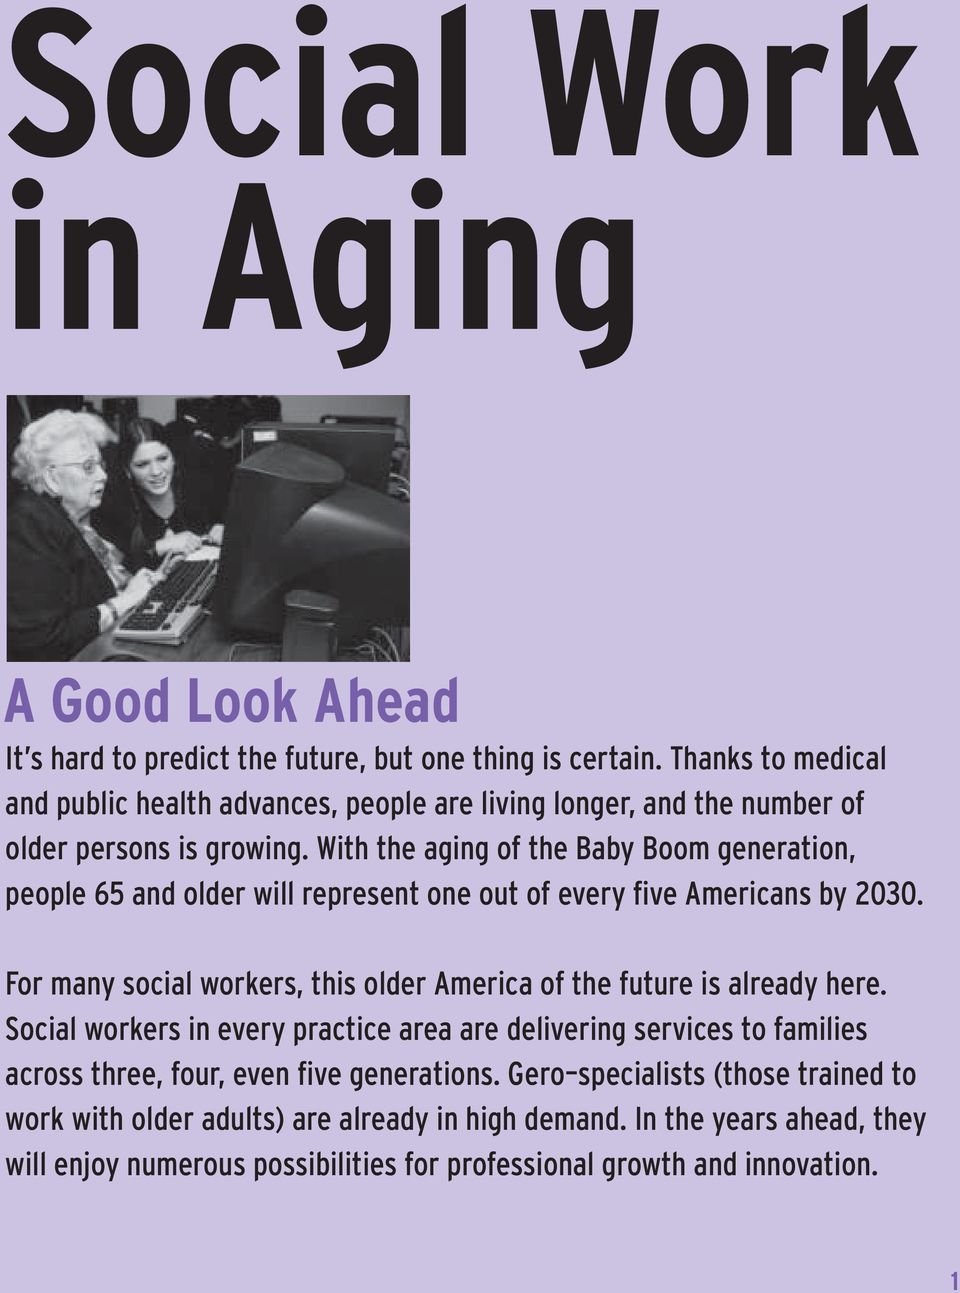 With the aging of the Baby Boom generation, people 65 and older will represent one out of every five Americans by 2030.